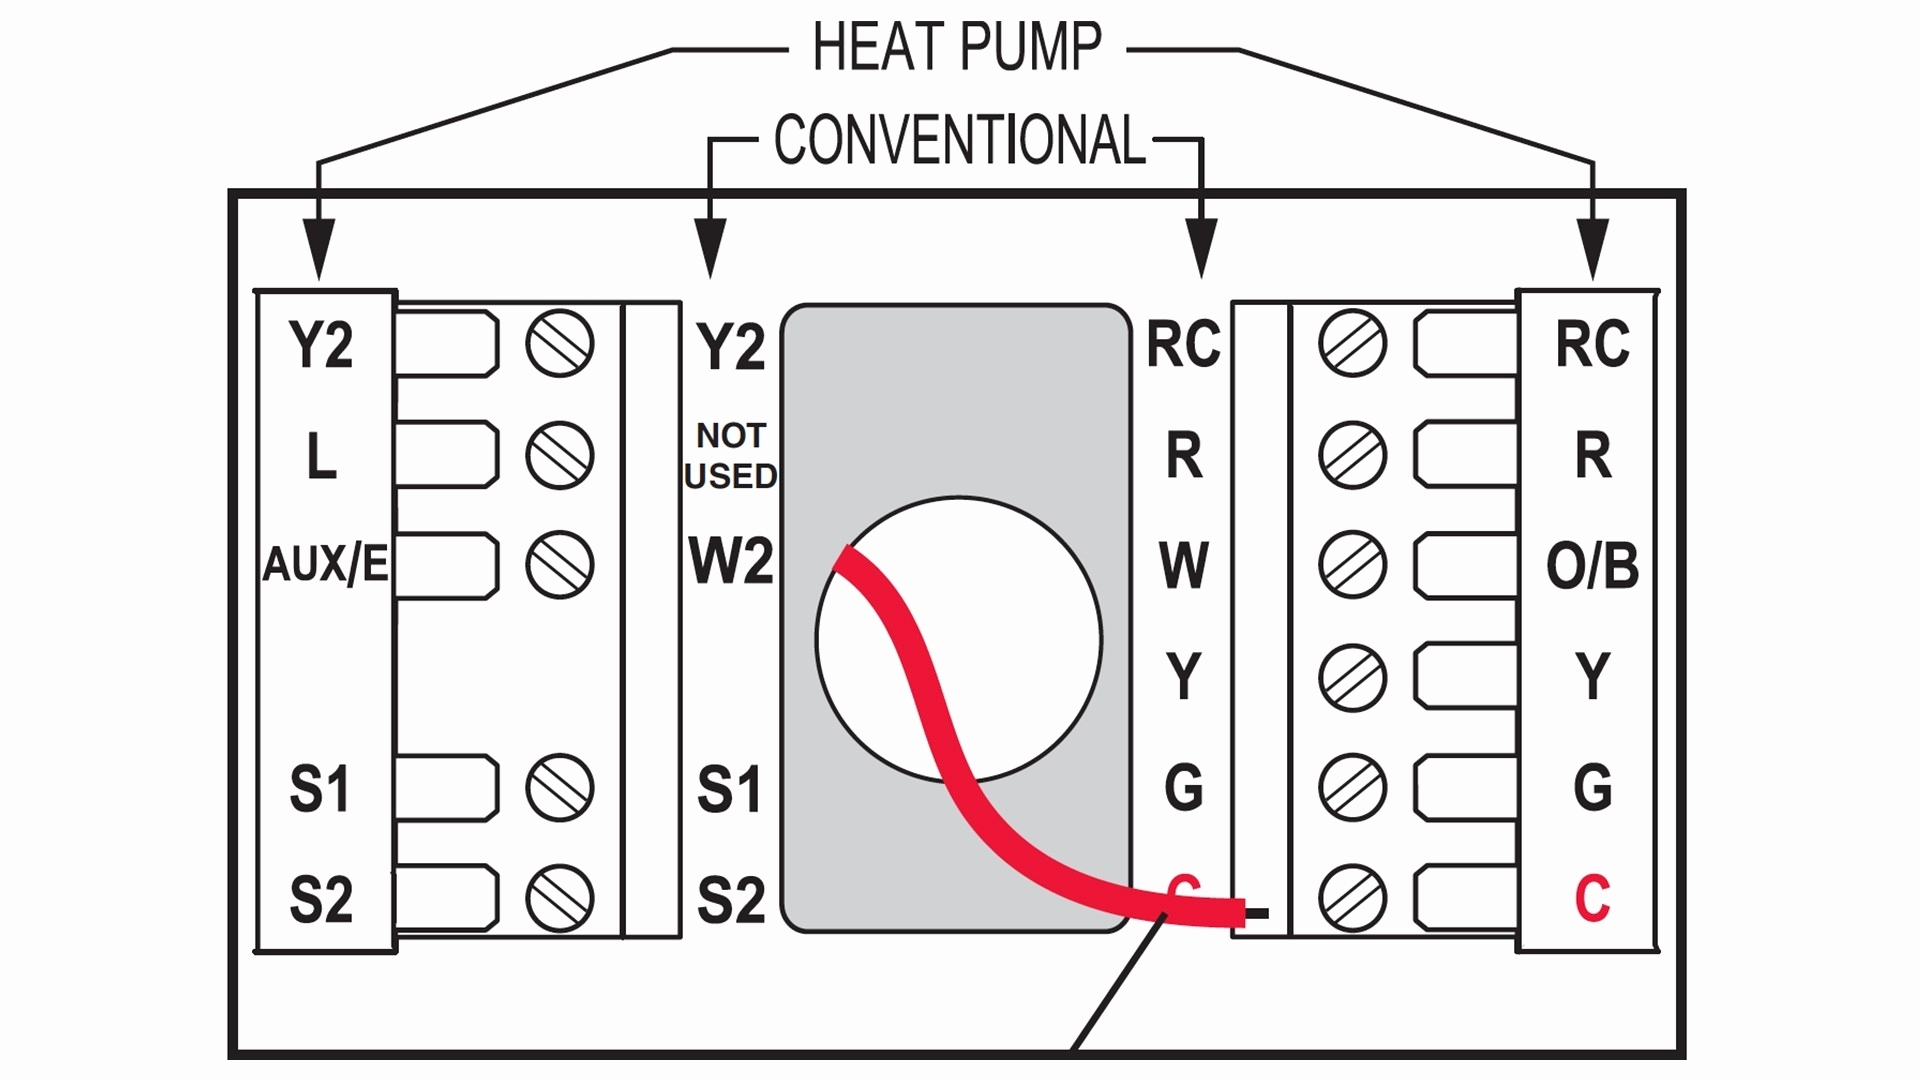 Amazing White Rodgers Thermostat Wiring Diagram Heat Pump Free Wiring Diagram Zipur Mohammedshrine Wiring Diagrams Zipurmohammedshrineorg